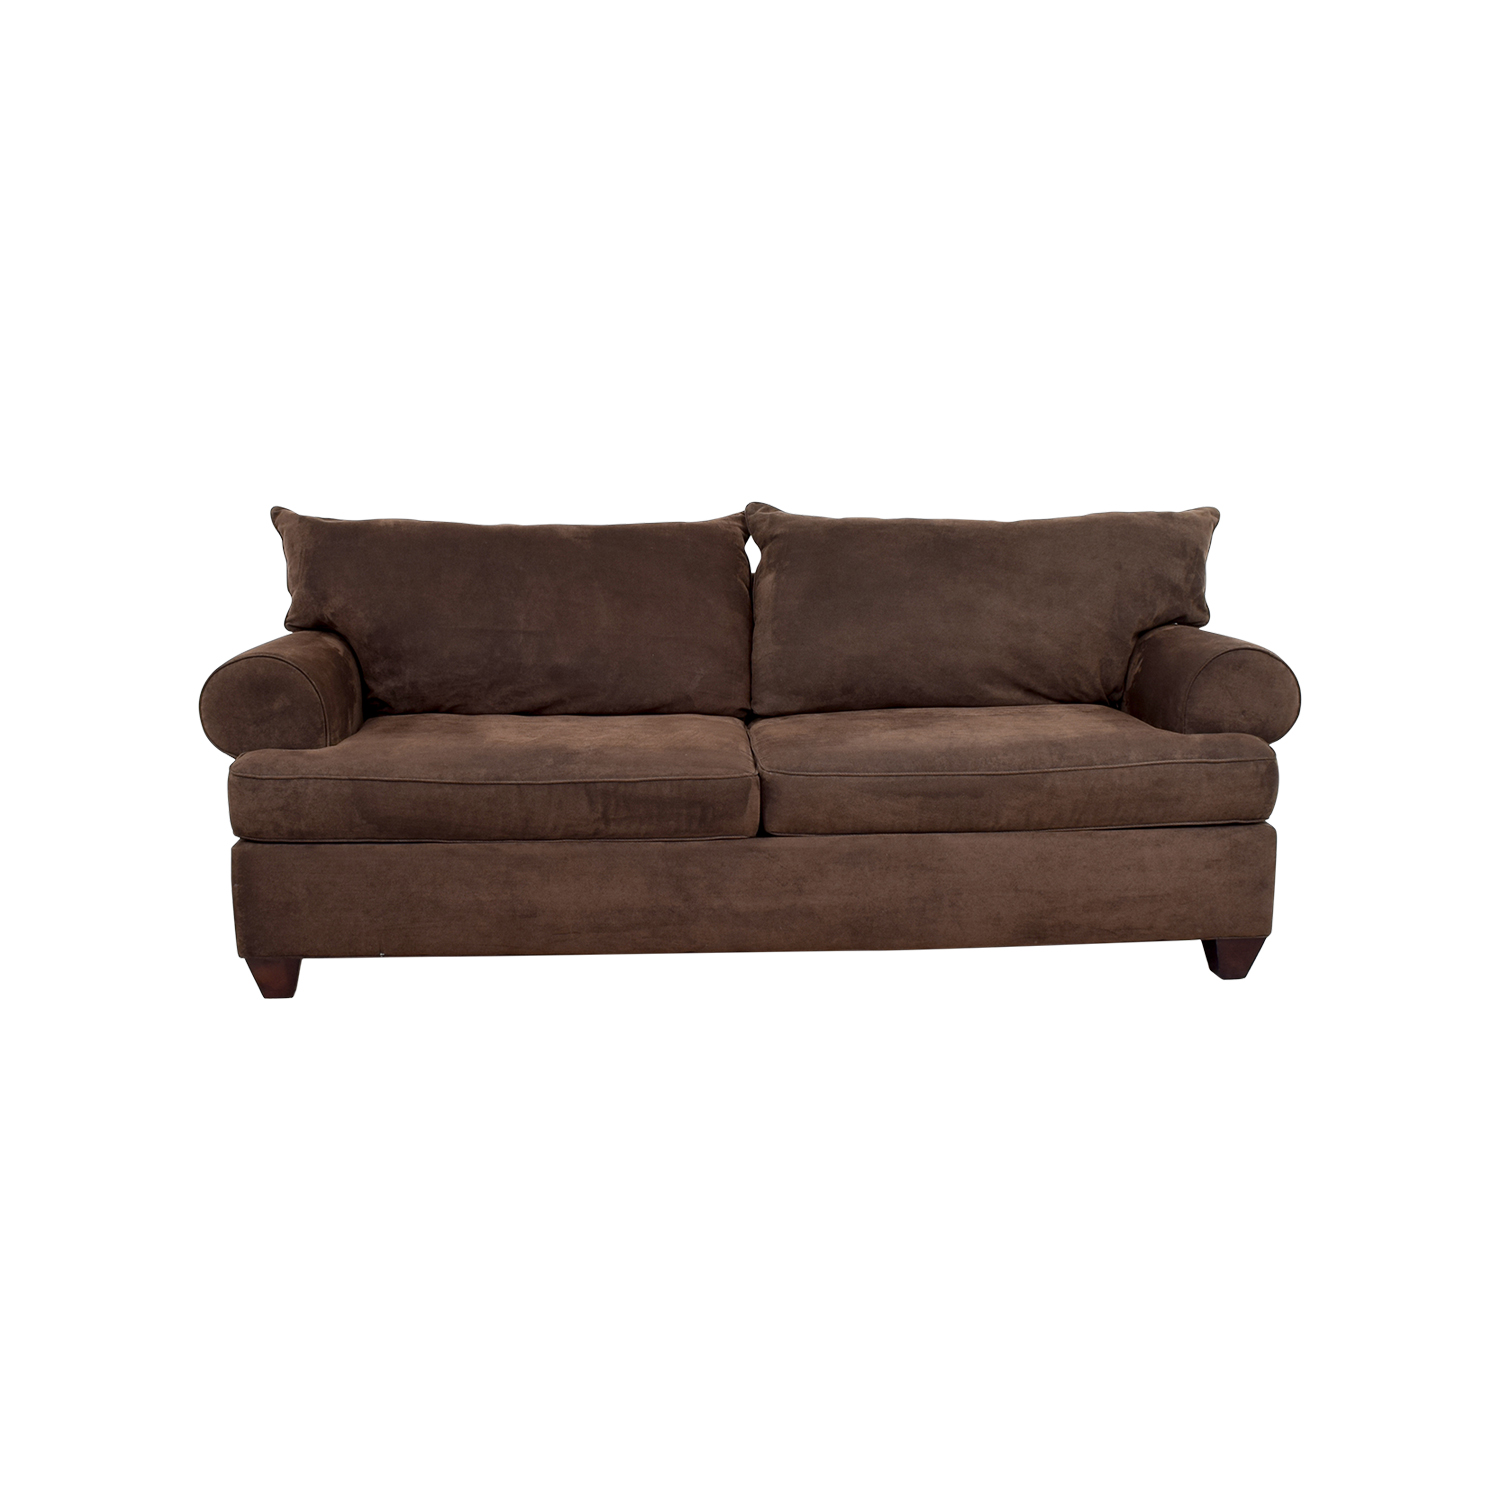 Brown corduroy sofa vista 3 piece sectional ashley for Brown corduroy couch